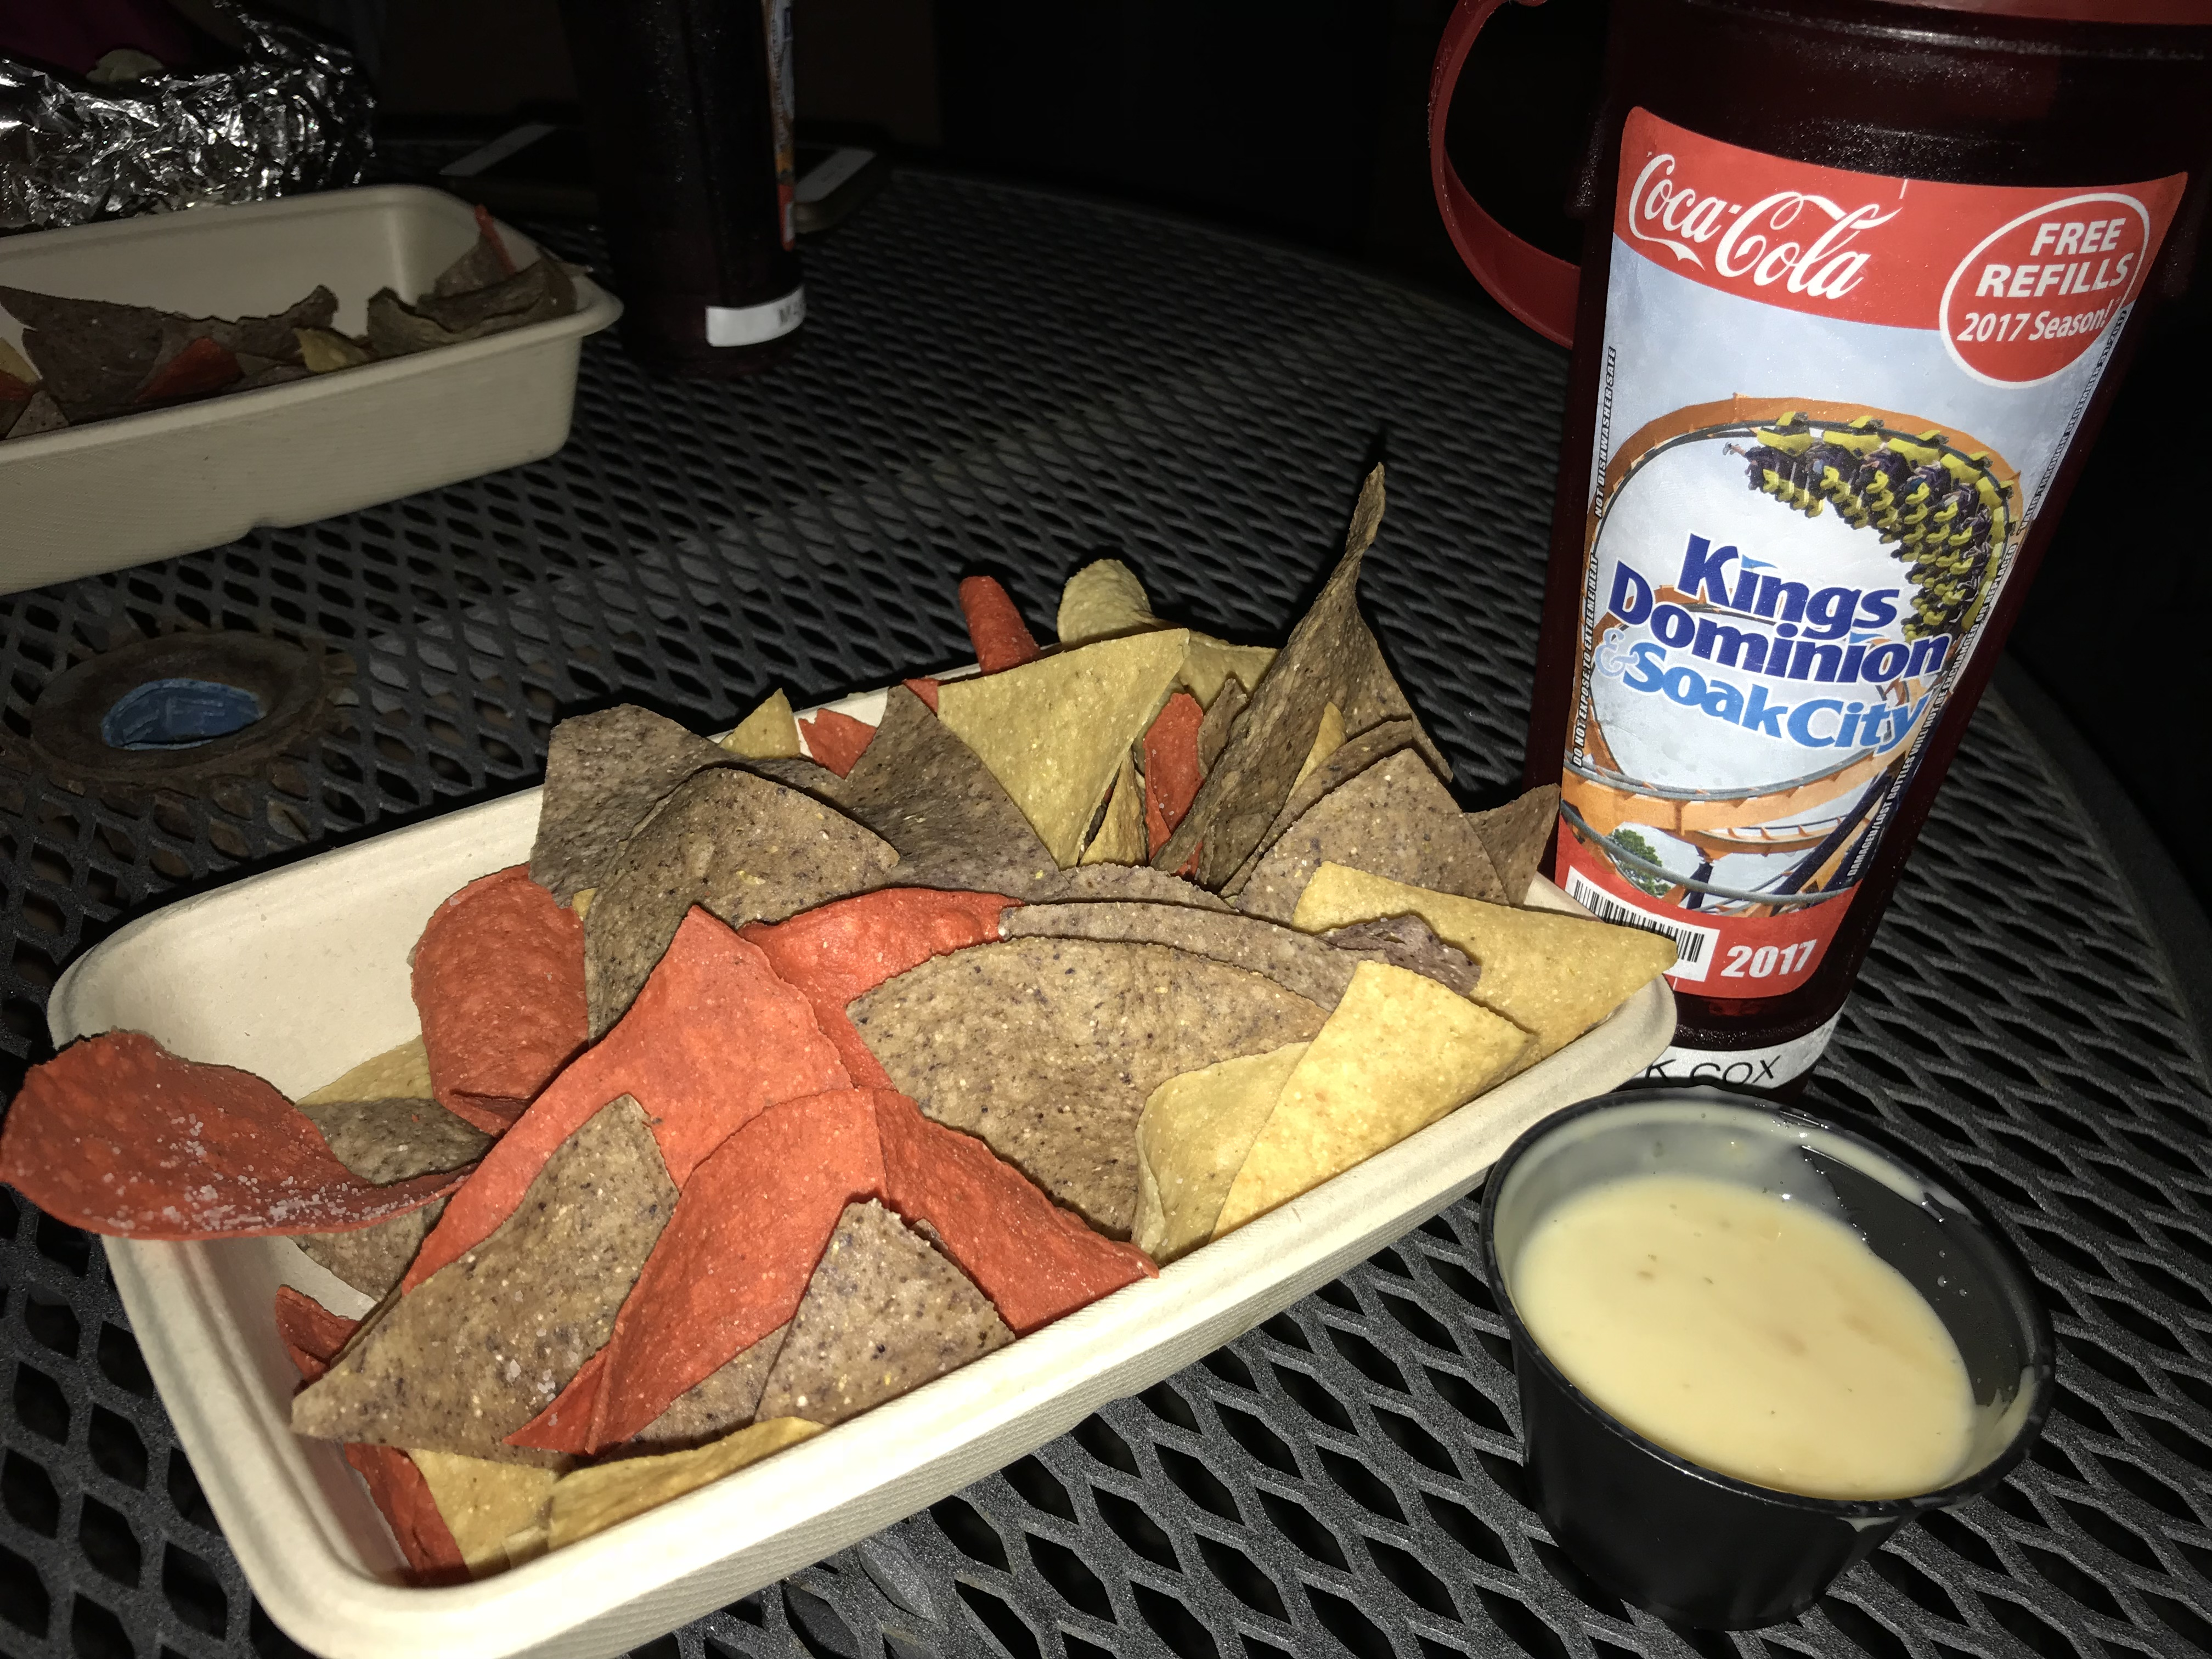 171014 Kings Dominion Border Cafe Chips & Queso ©Nick Cox